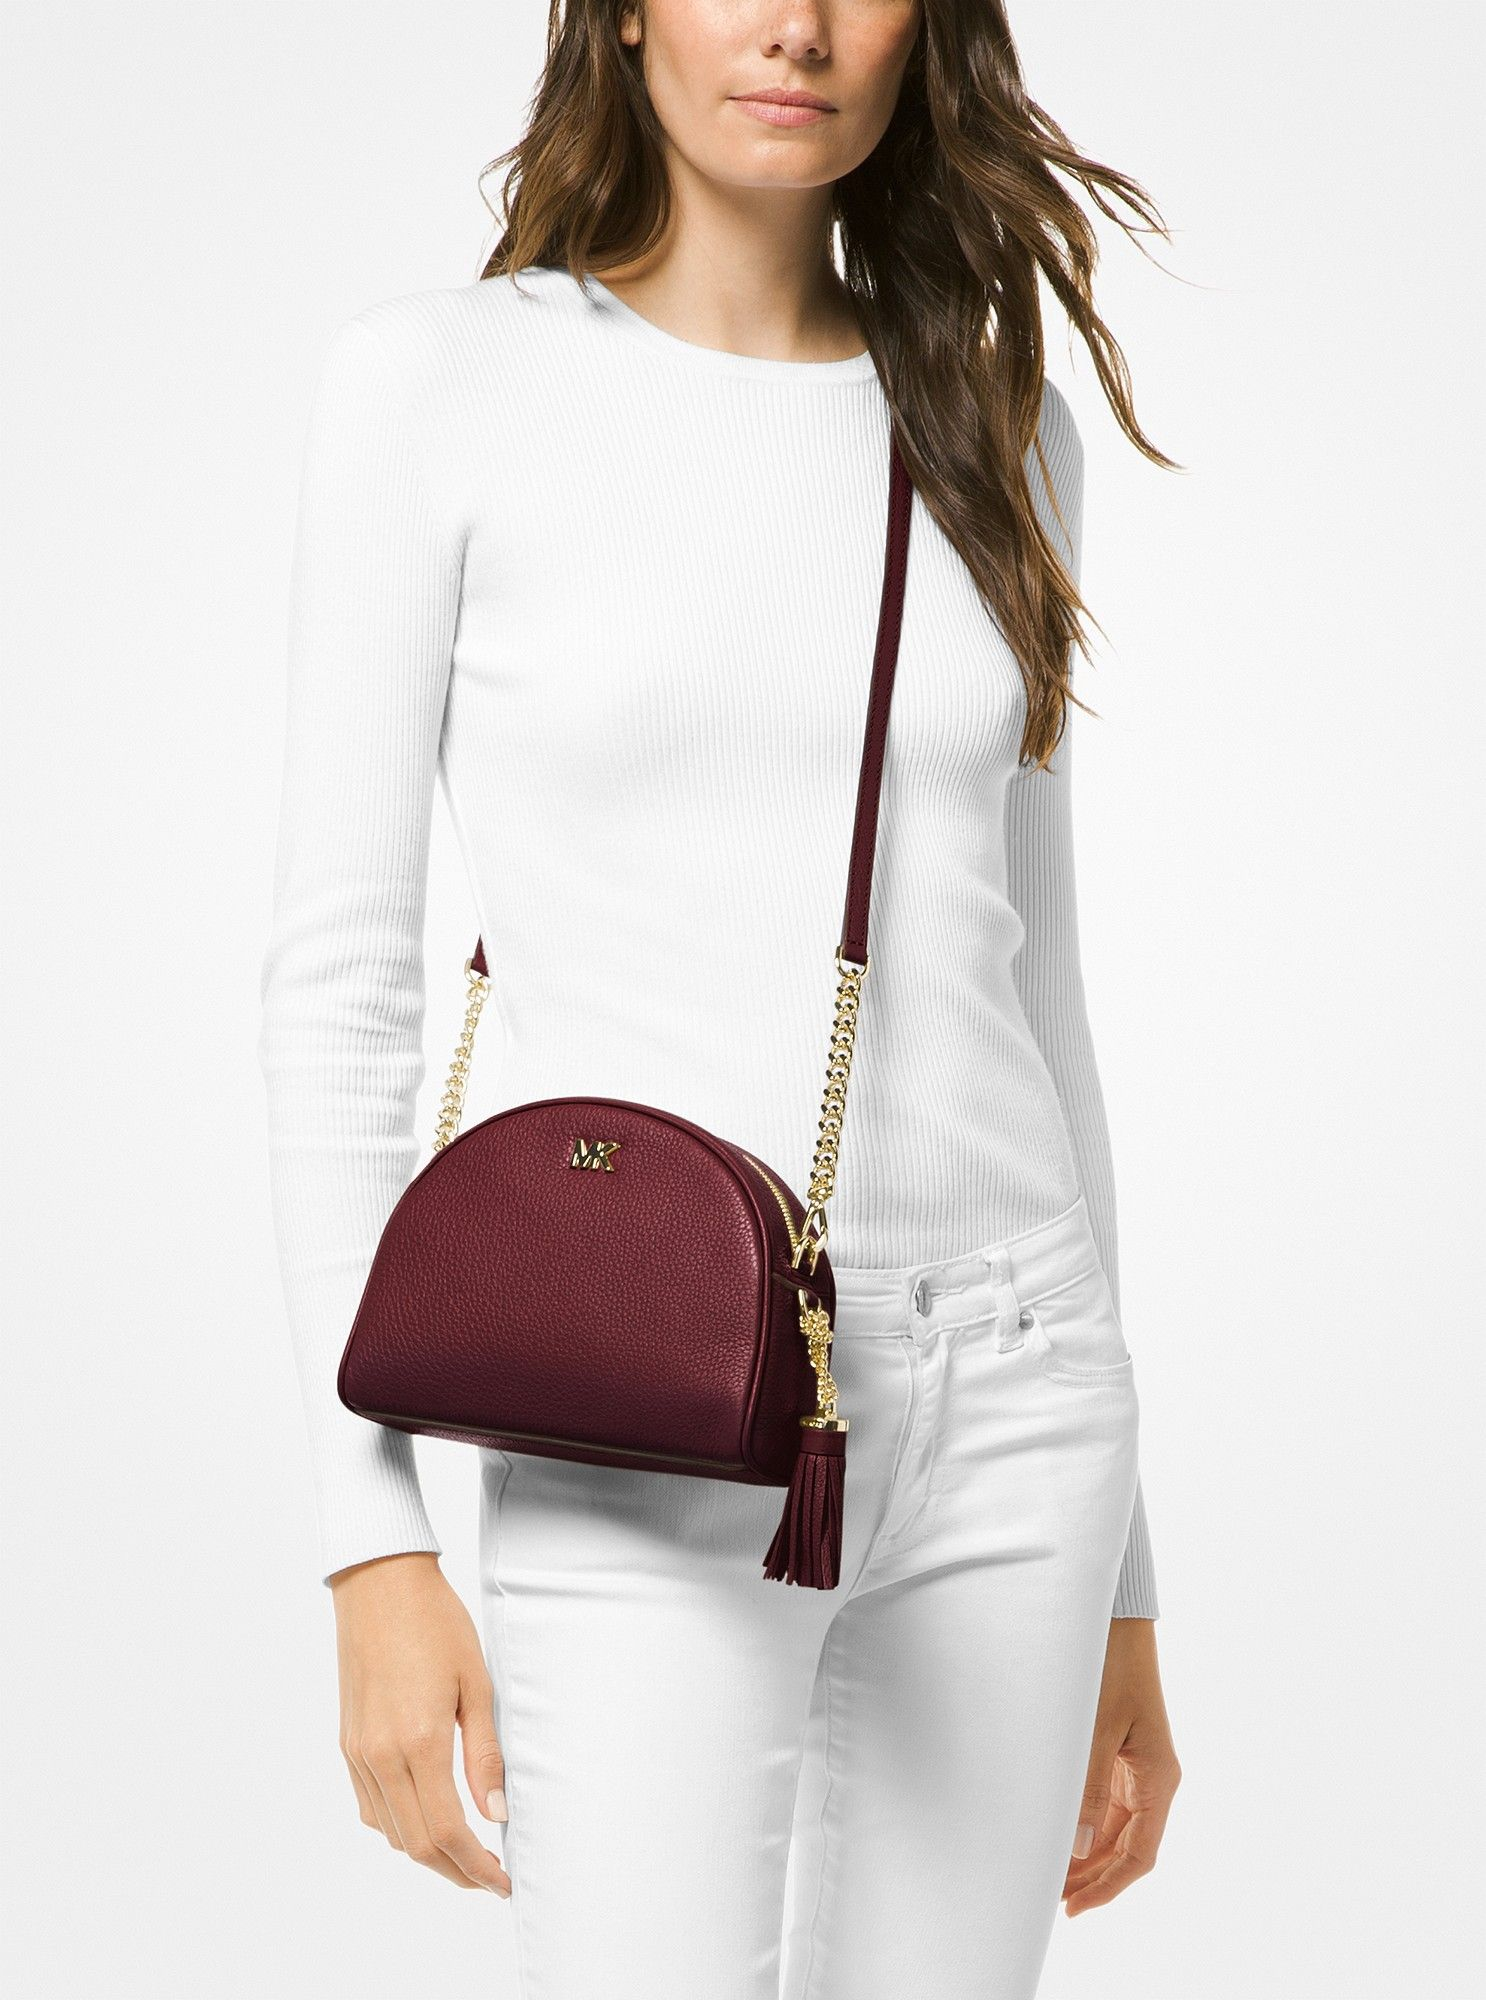 4501526475c4 Michael Kors Ginny Pebbled Leather Half-Moon Crossbody - Oxblood ...